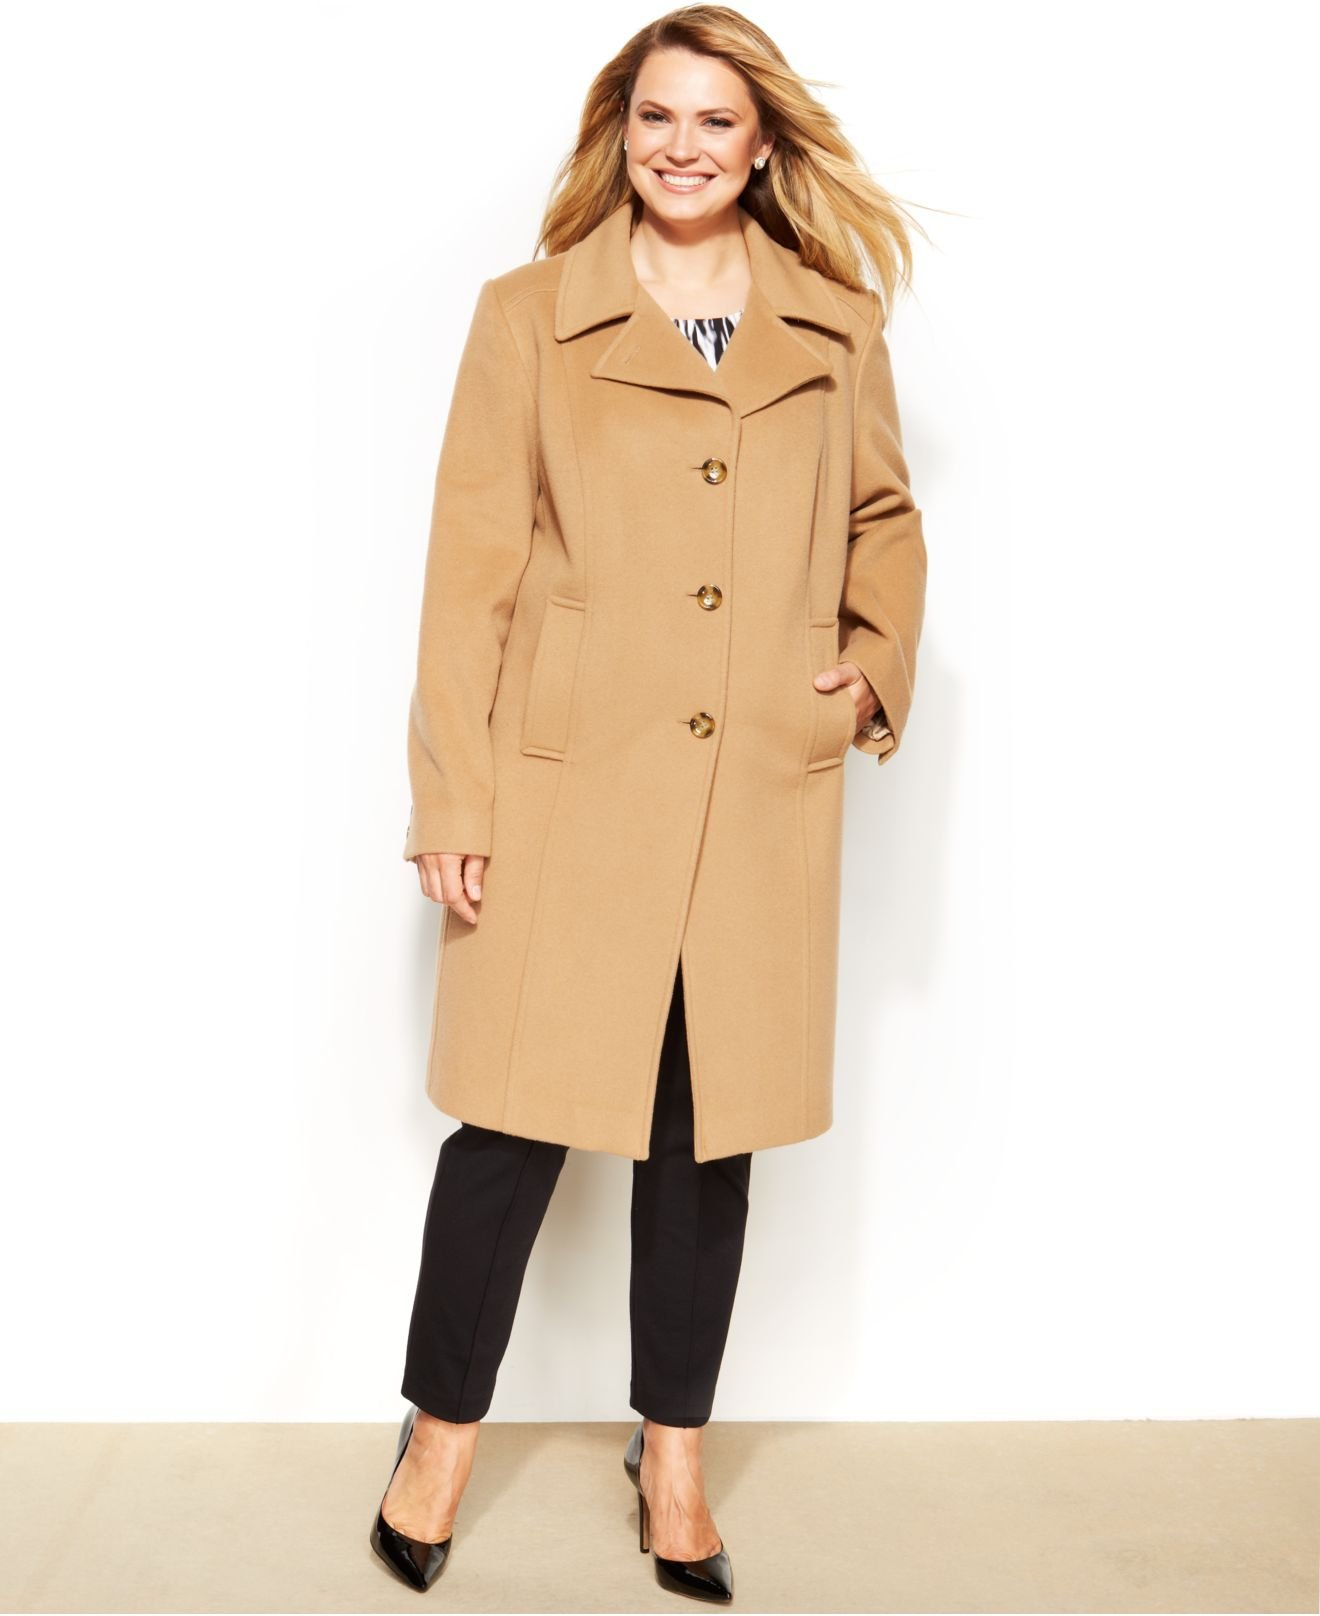 Anne klein Plus Size Wool-Cashmere-Blend Walker Coat in Natural | Lyst